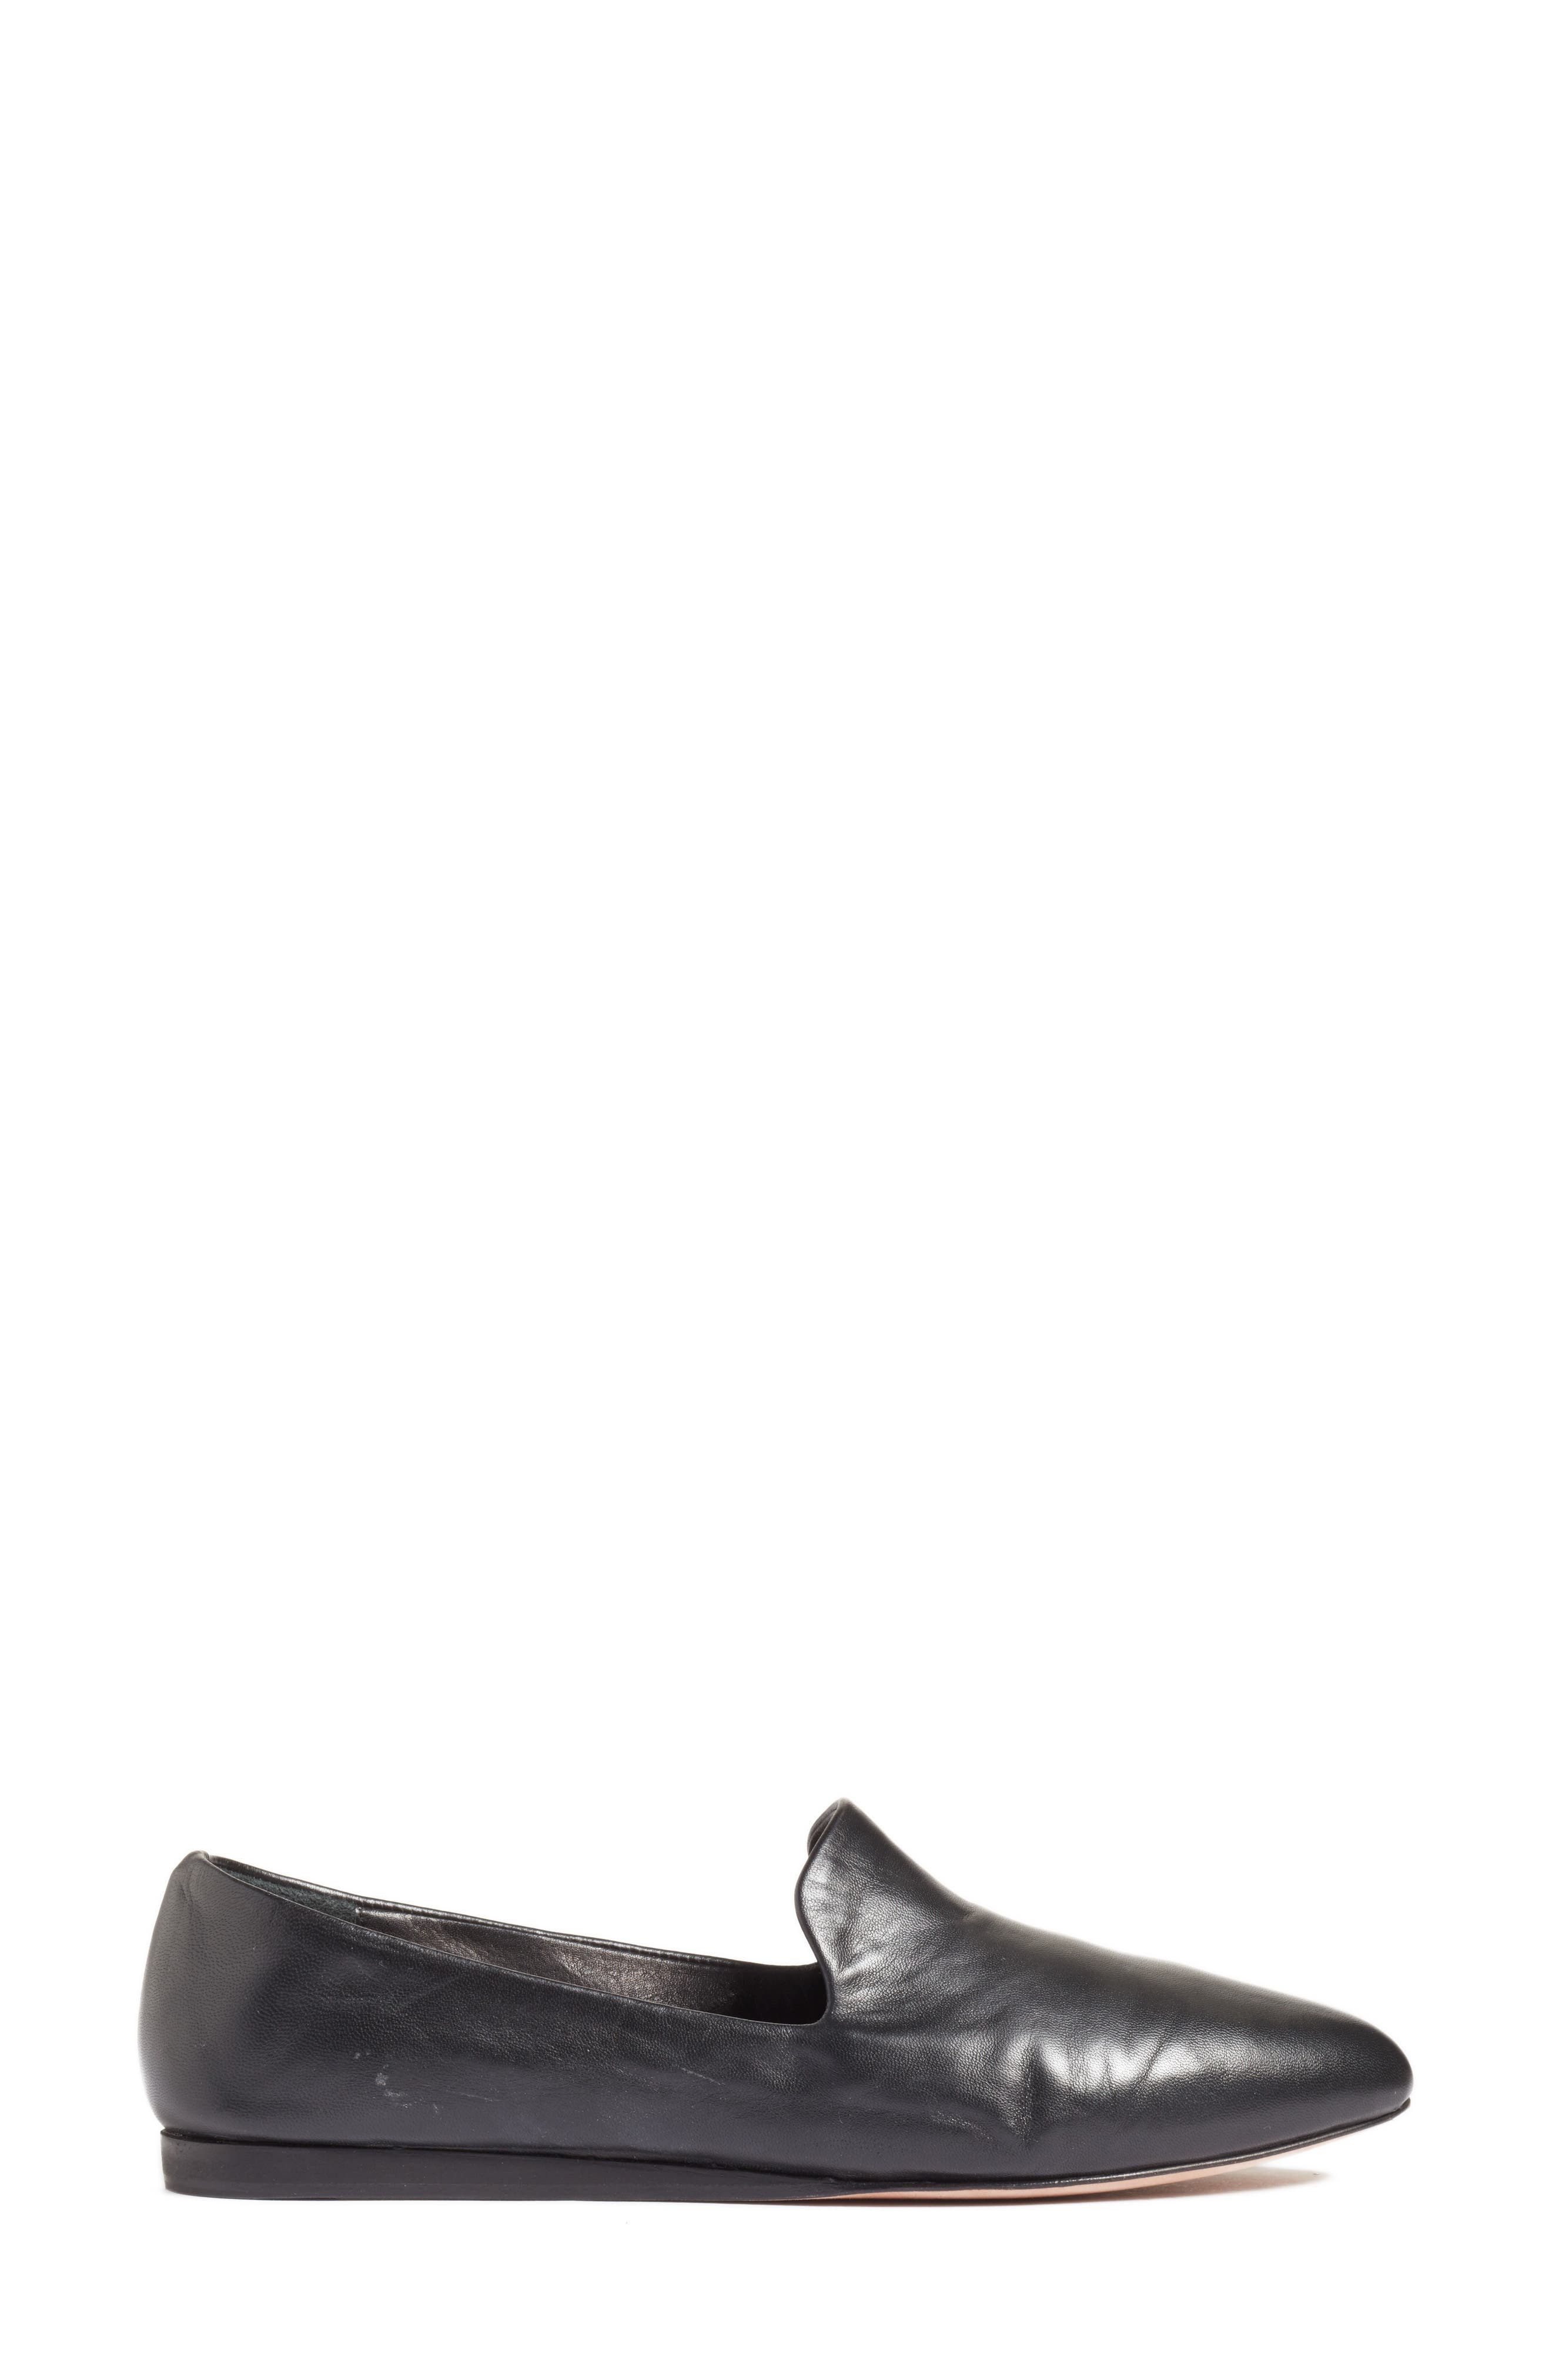 Griffin Pointy Toe Loafer,                             Alternate thumbnail 3, color,                             BLACK